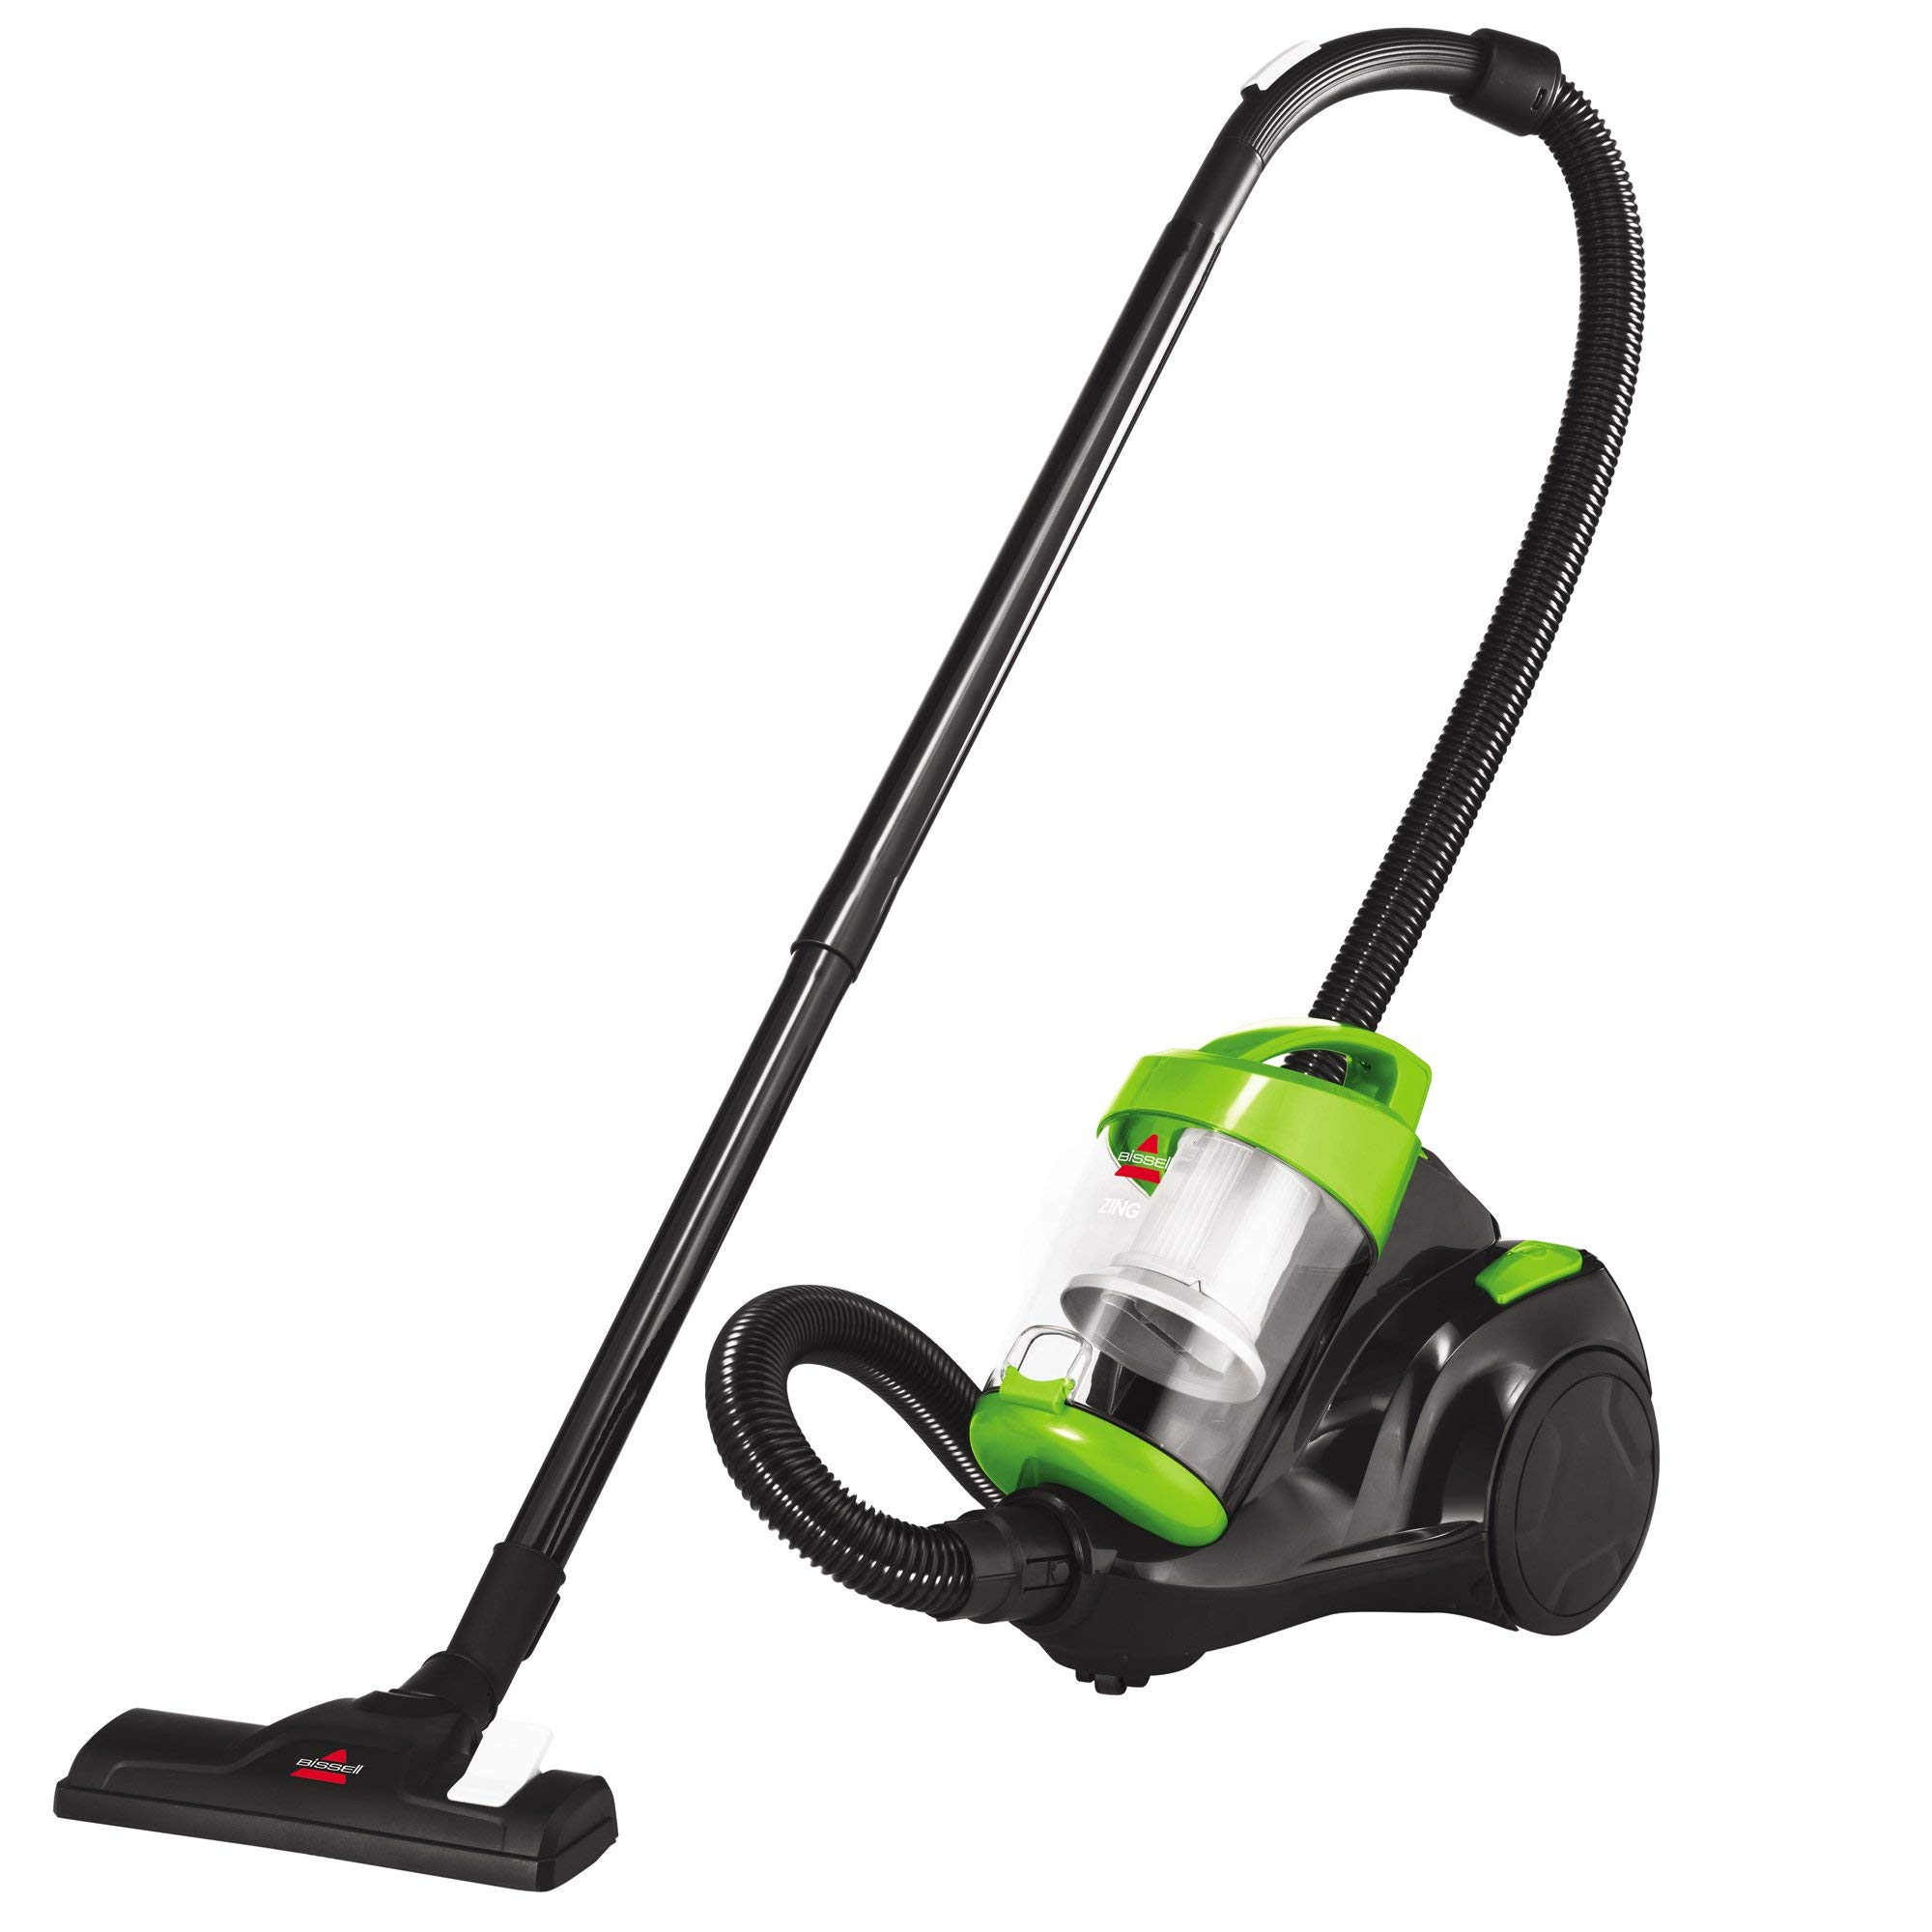 Bissell Zing Canister, 2156A Bagless Vacuum, Green (Renewed) by Bissell